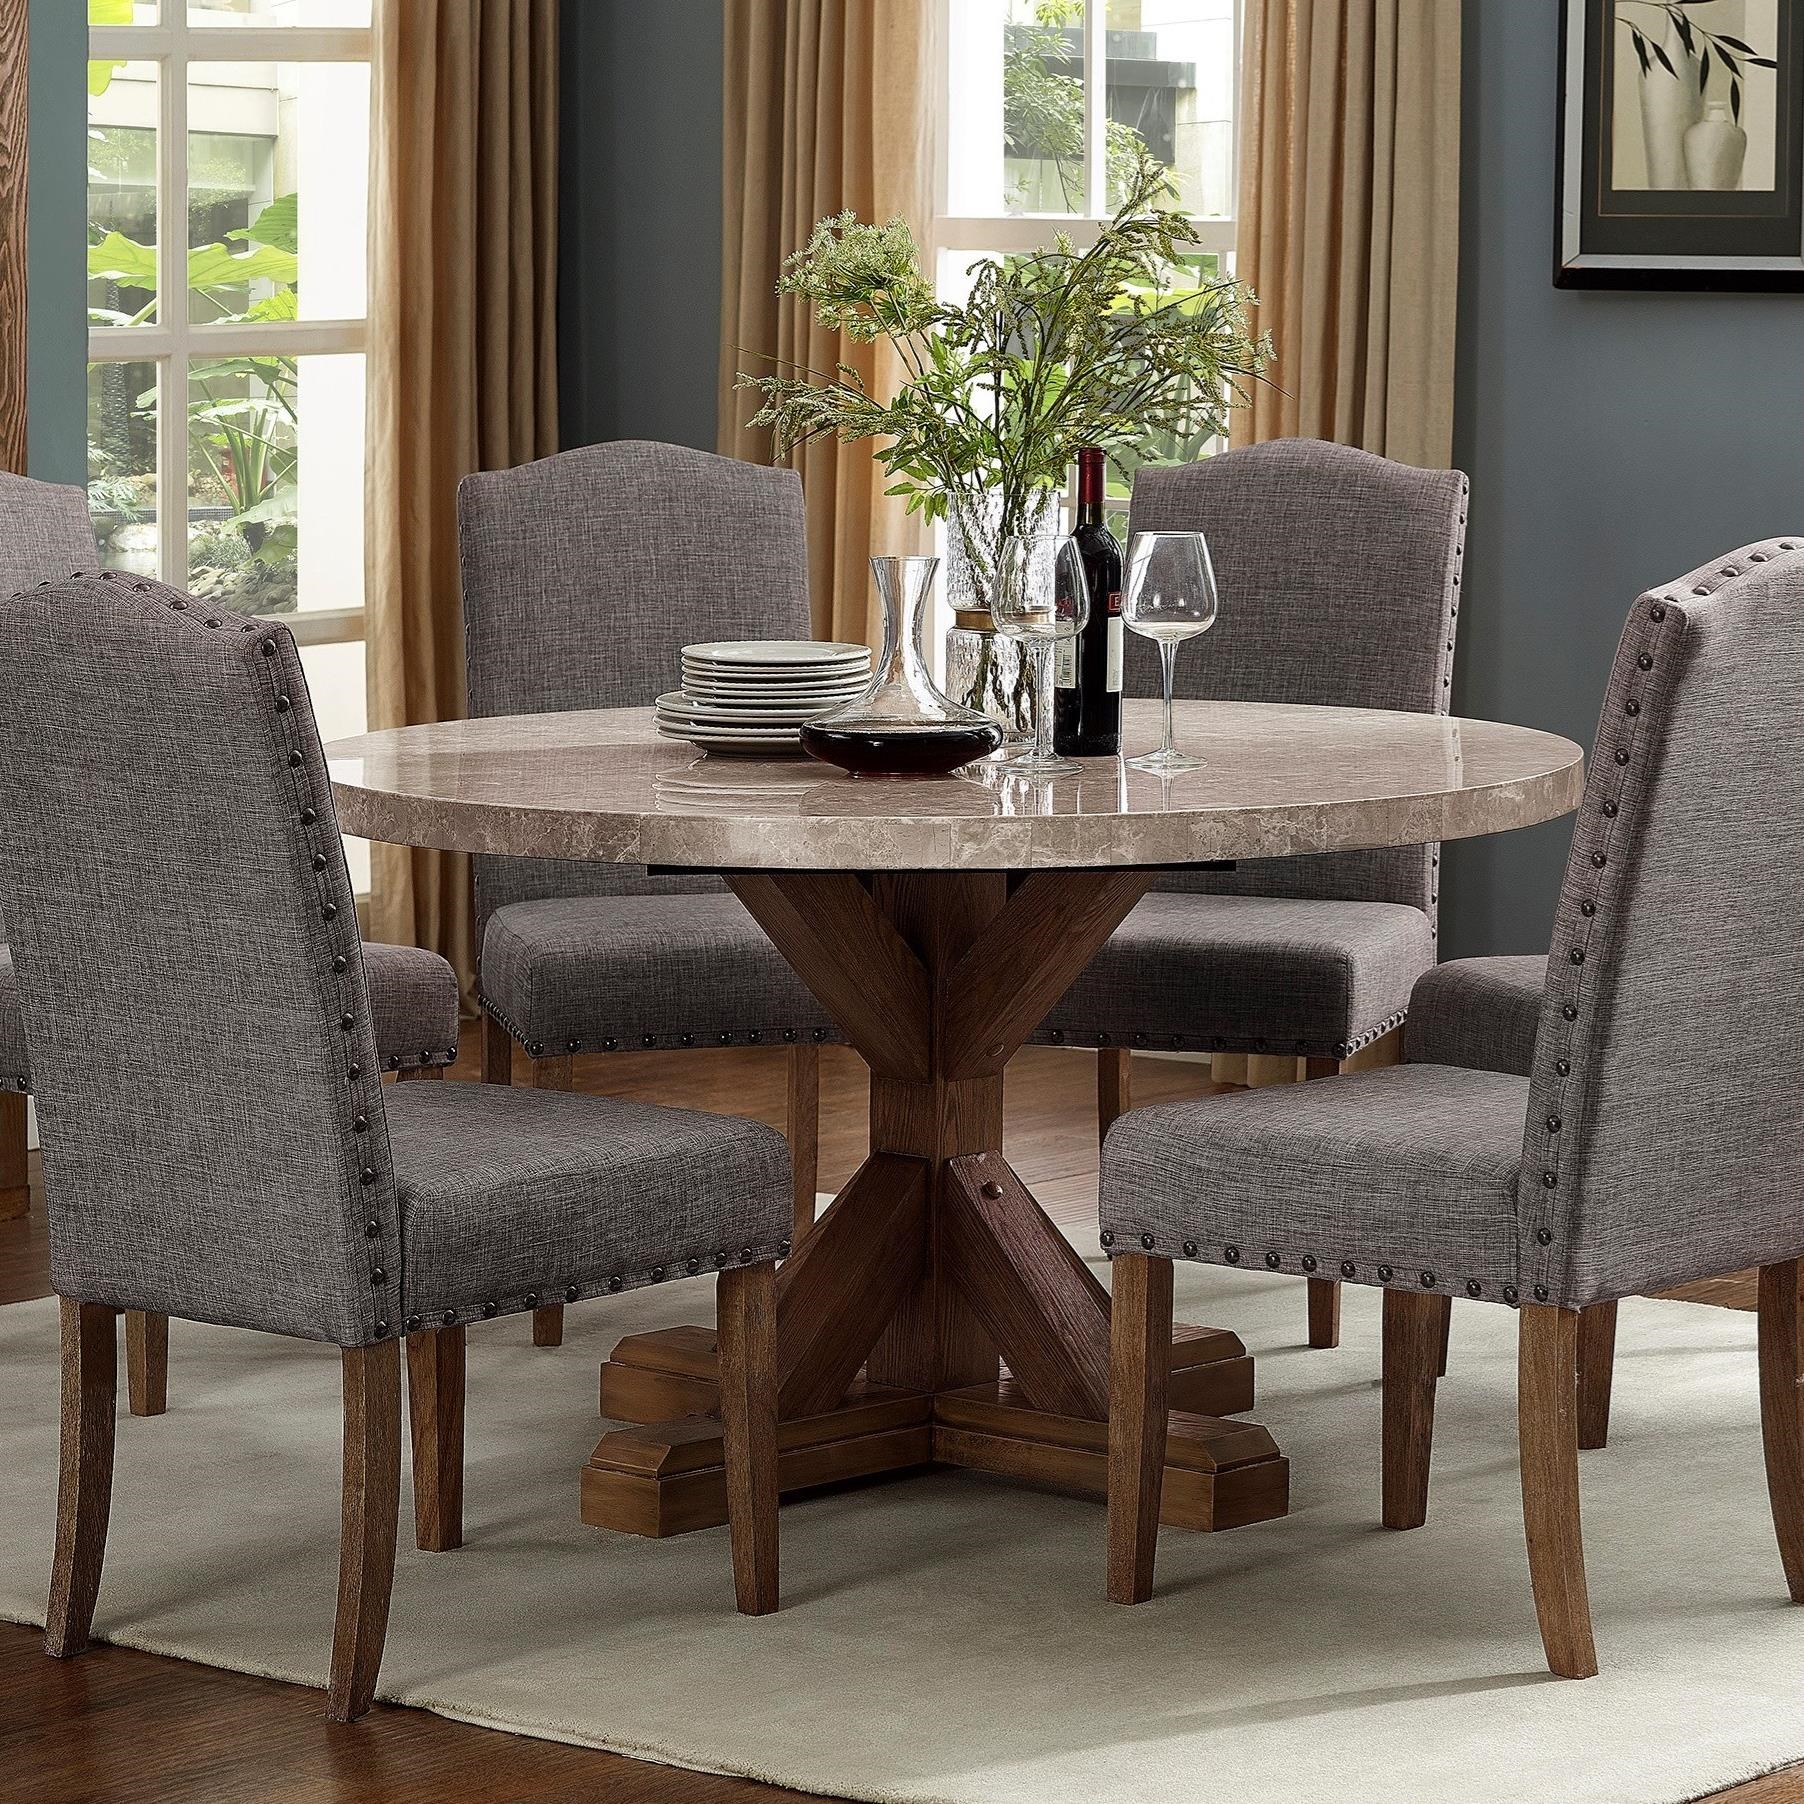 Circular Dining Room Table: Crown Mark Vesper Dining Round Dining Table With Pedestal